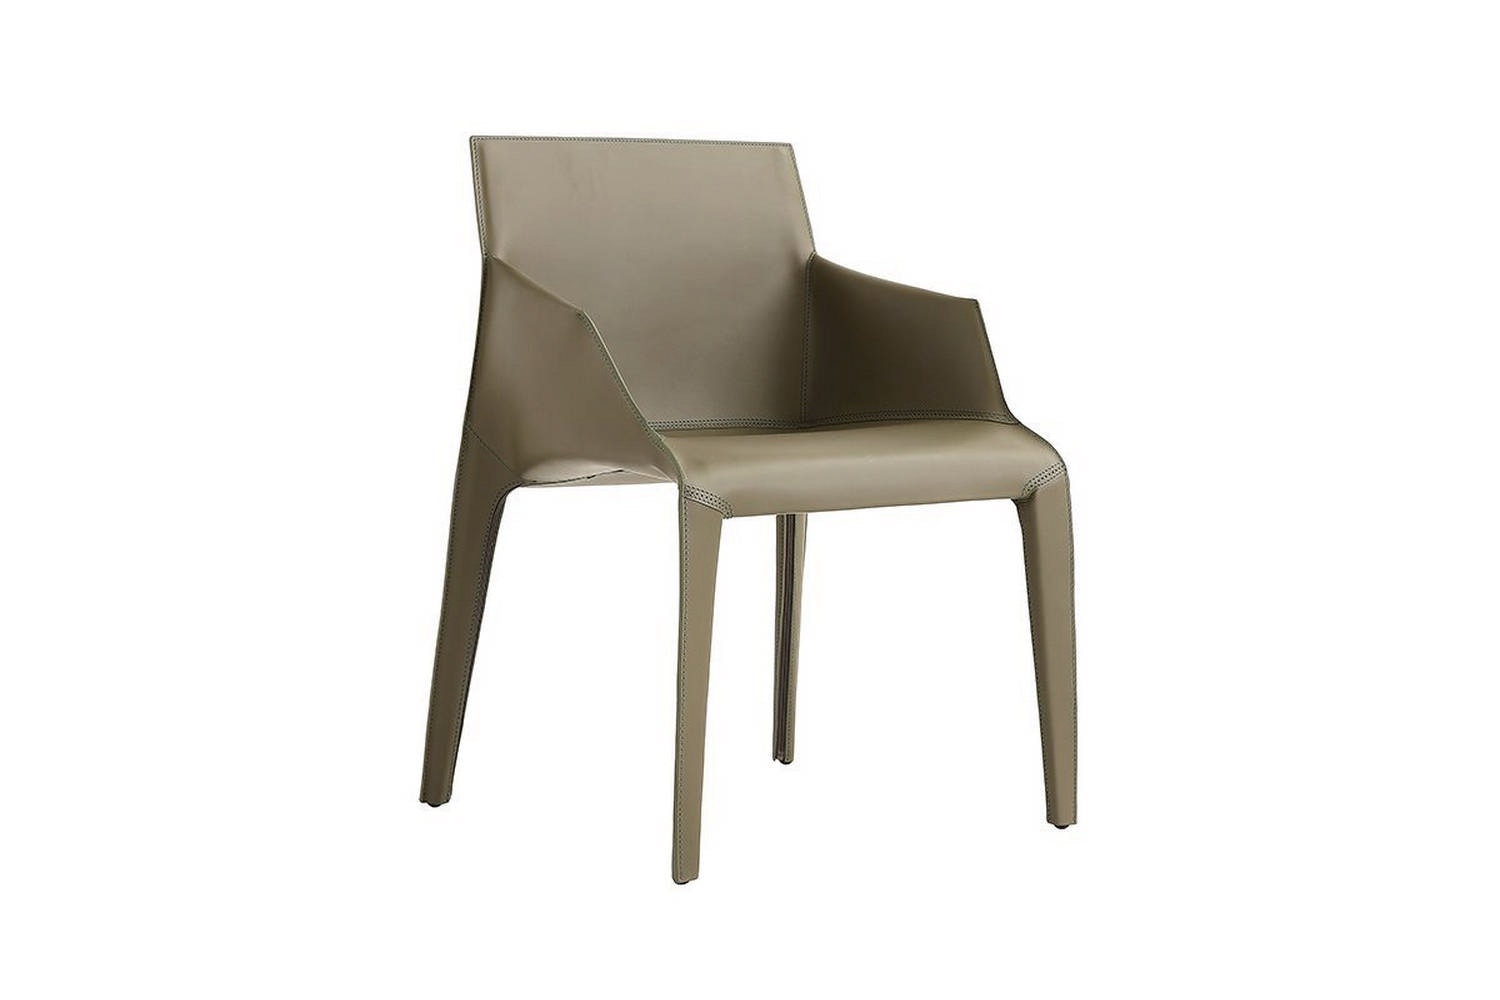 Seattle 2018 Chair Chair by J. M. Massaud for Poliform